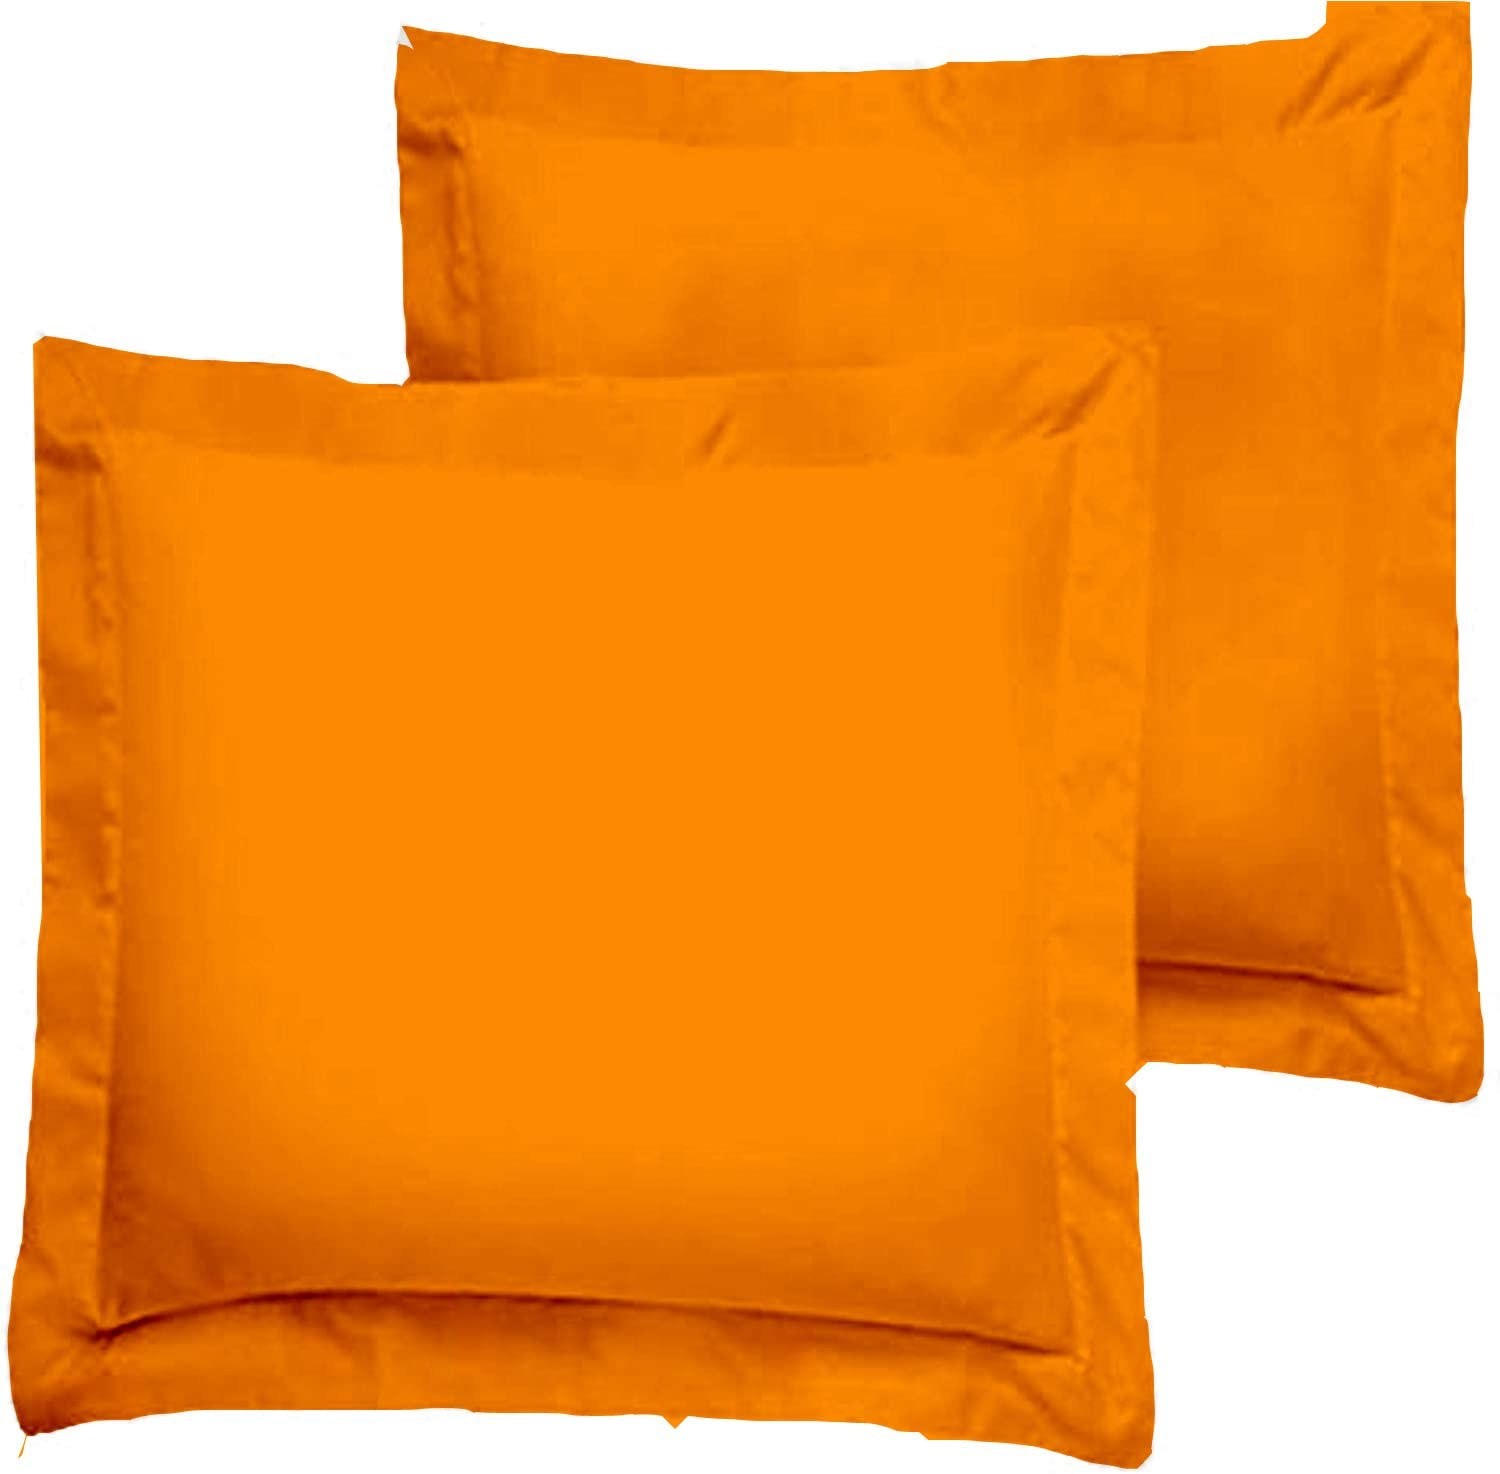 Trust Layer 800 Thread Count 100% Organic Cotton Throw Pillow Sized 20 x 20 inch Pillow Shams Set of 2 Orange Solid